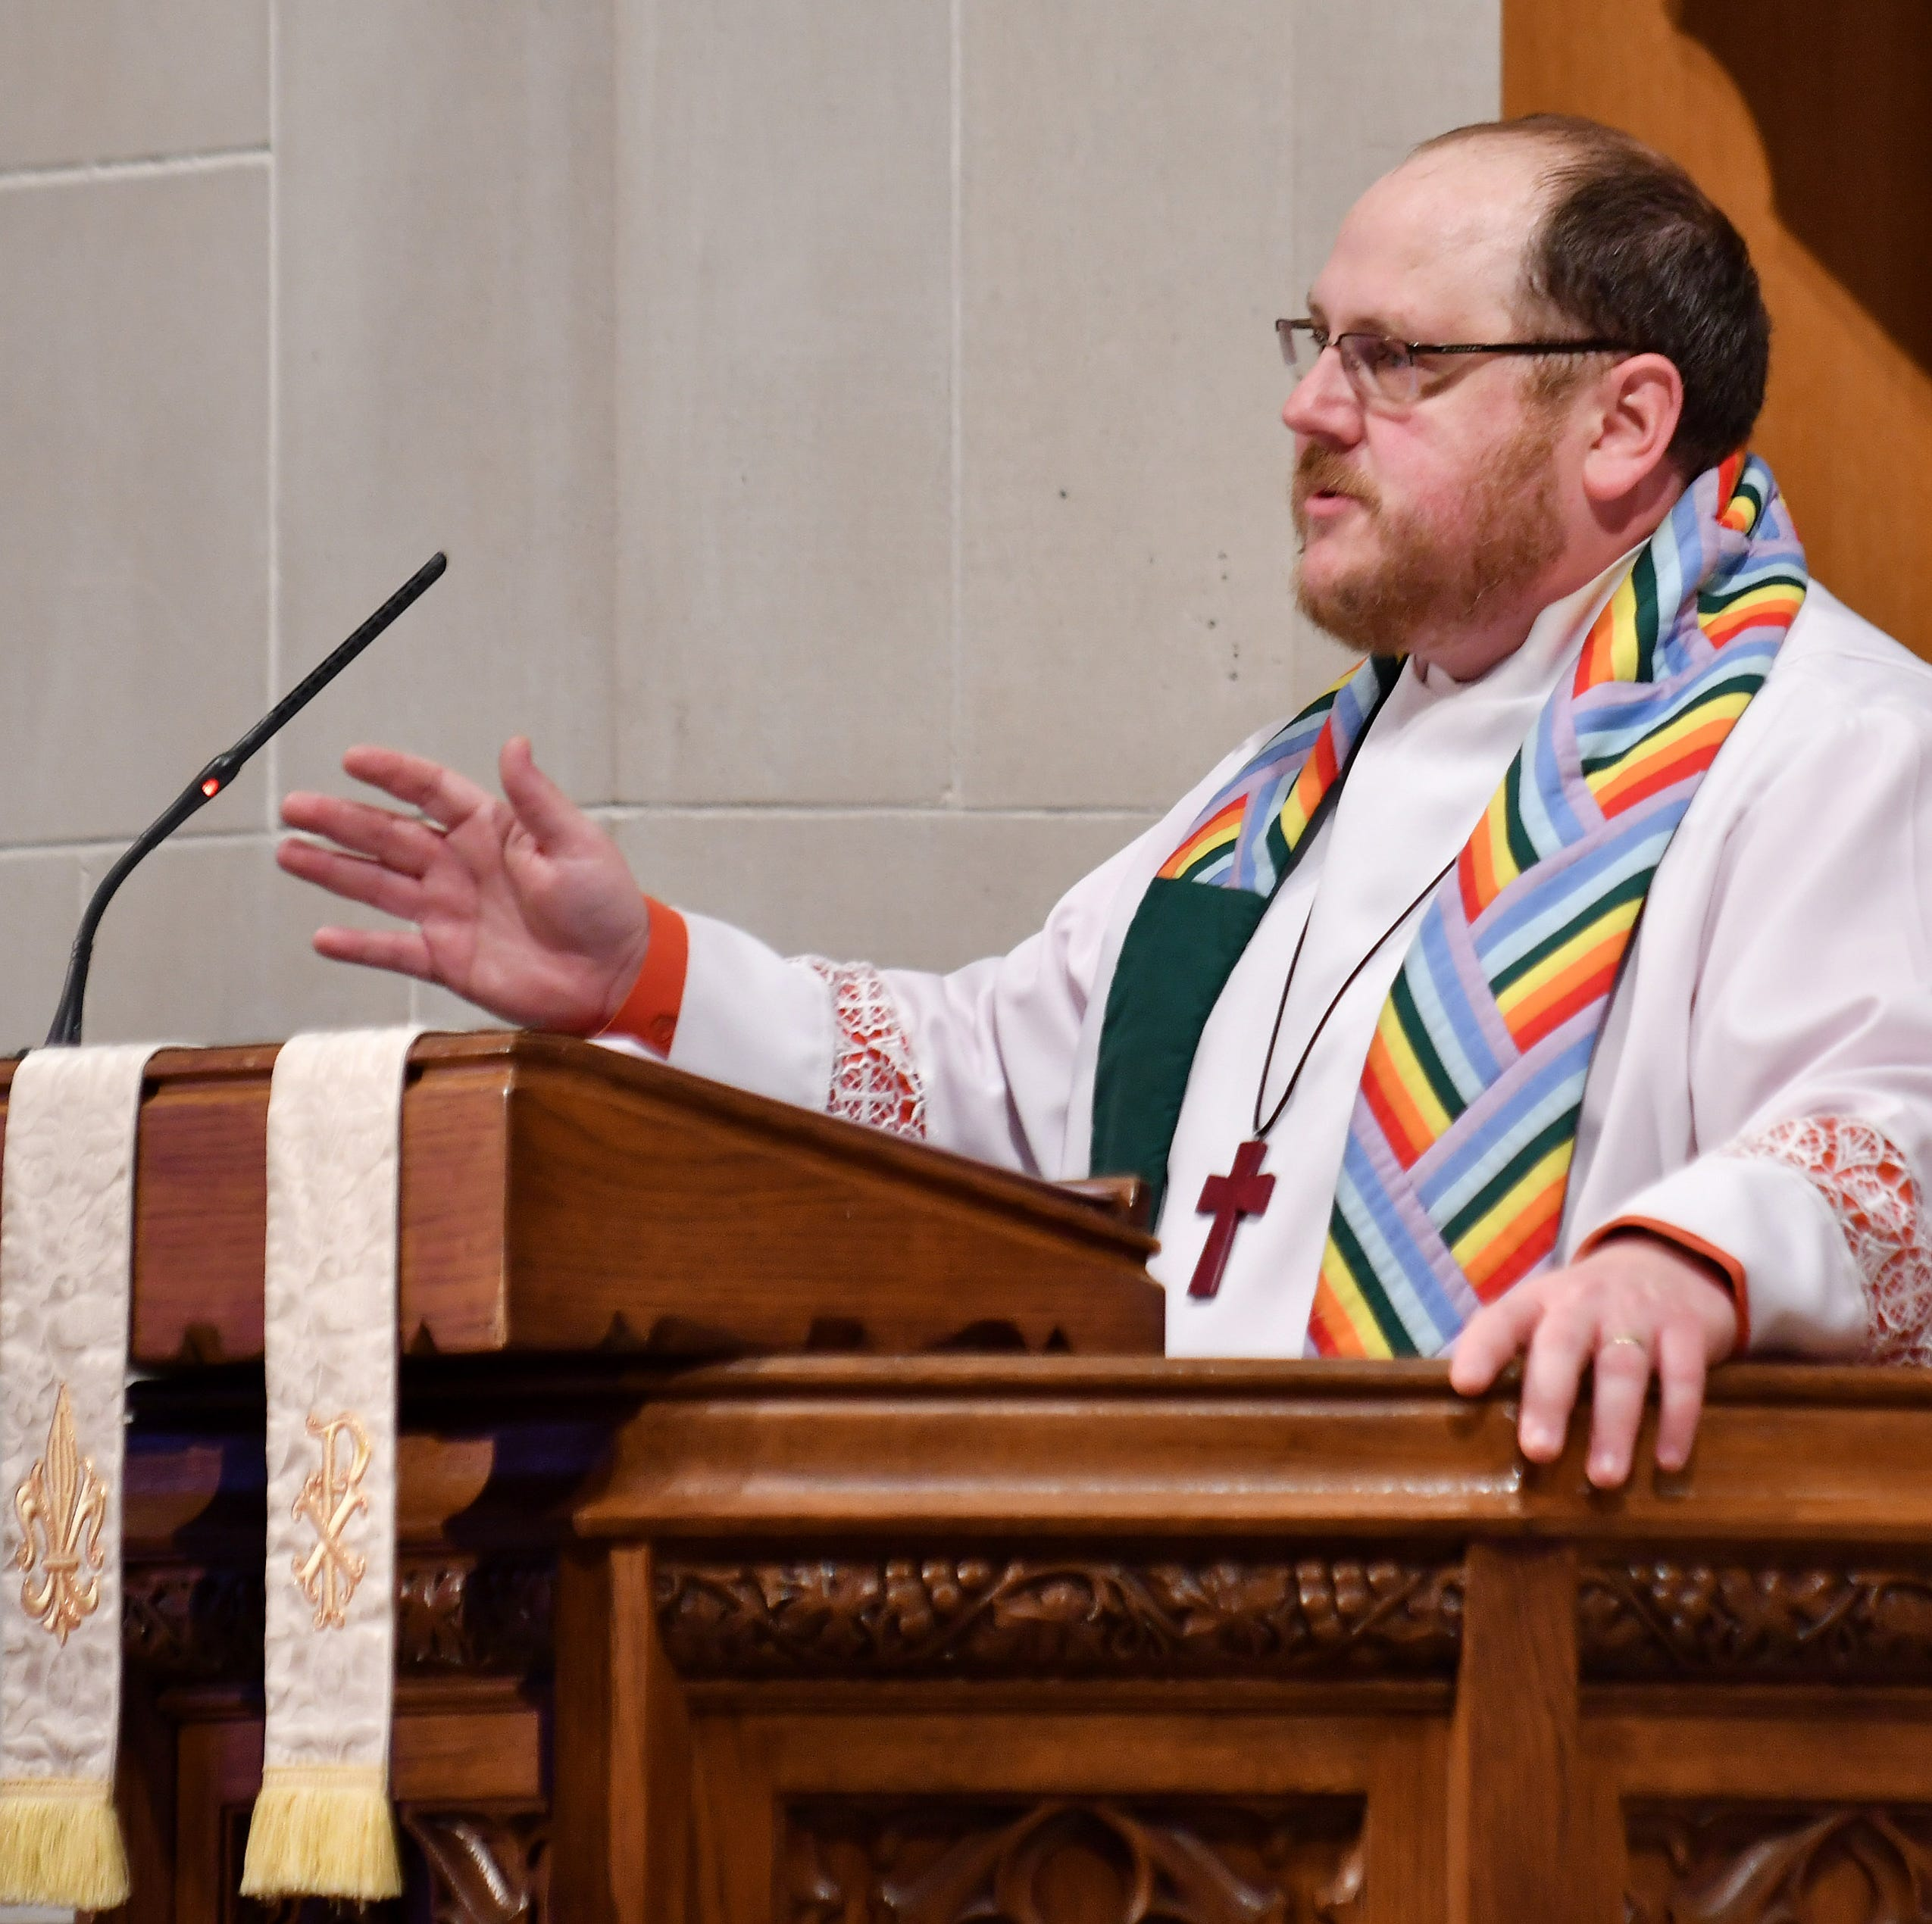 Amid LGBT debate, Michigan churches weigh future